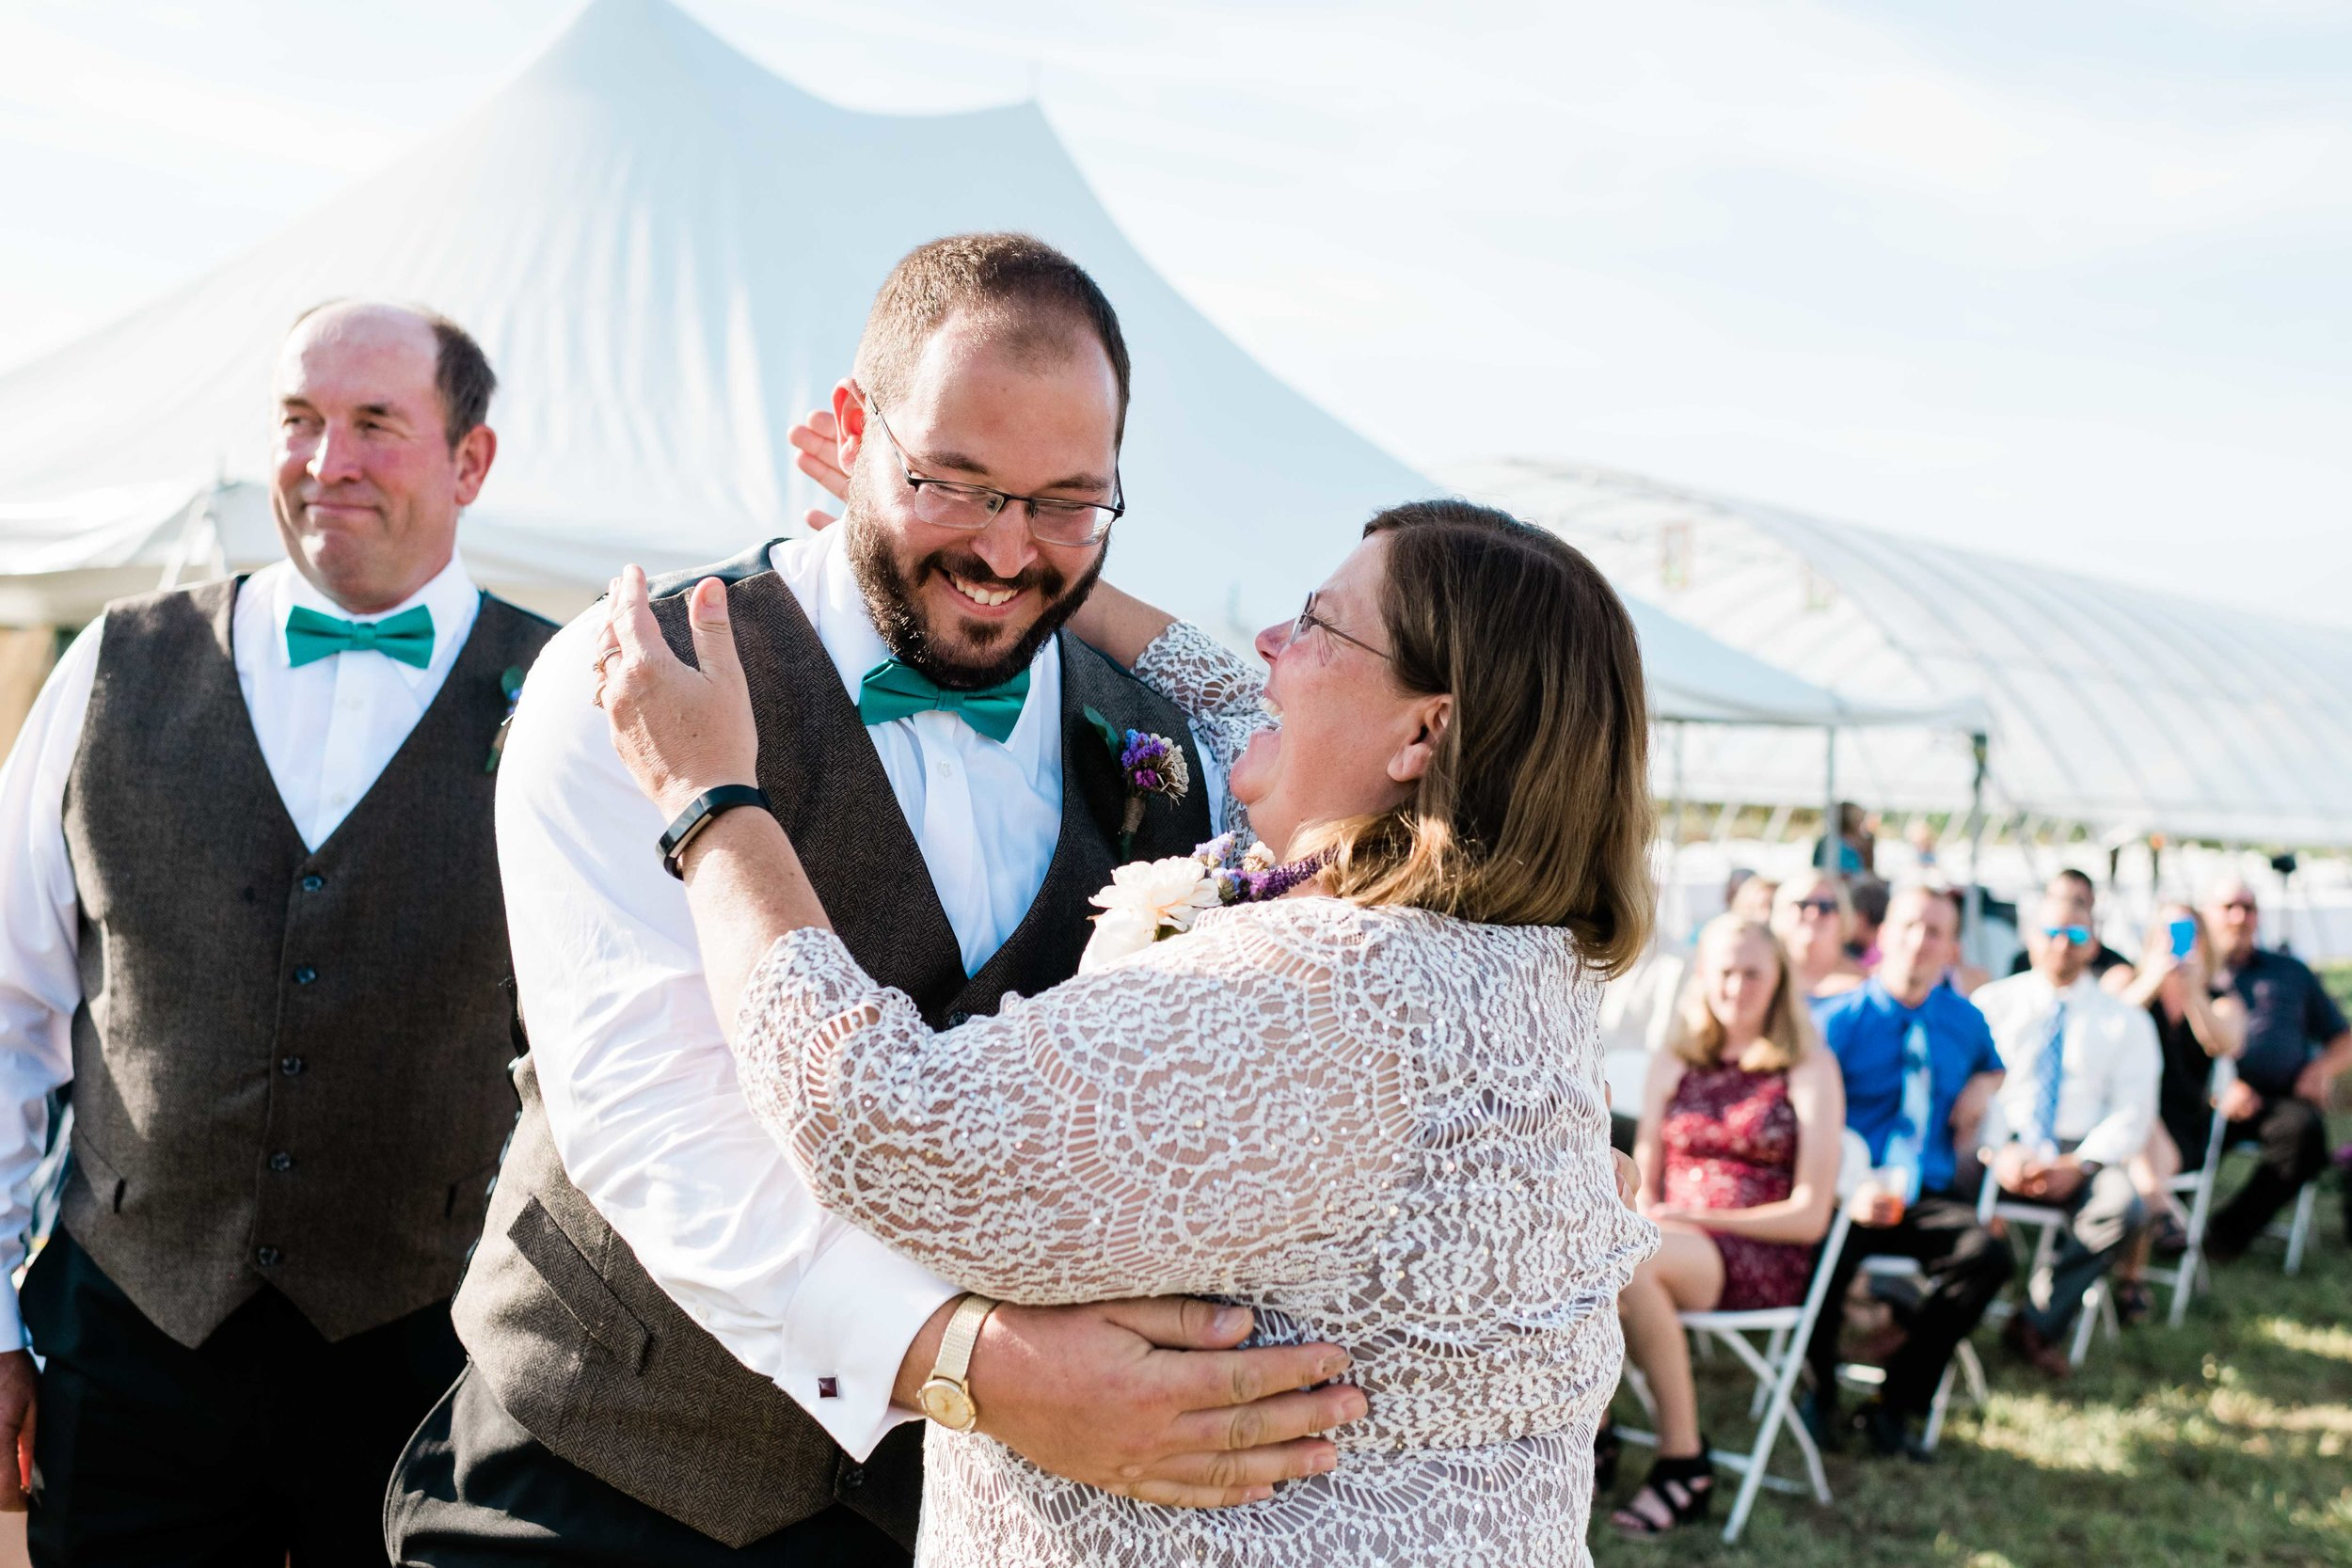 Groom and his mom share a laugh and a hug after they walk down the aisle together